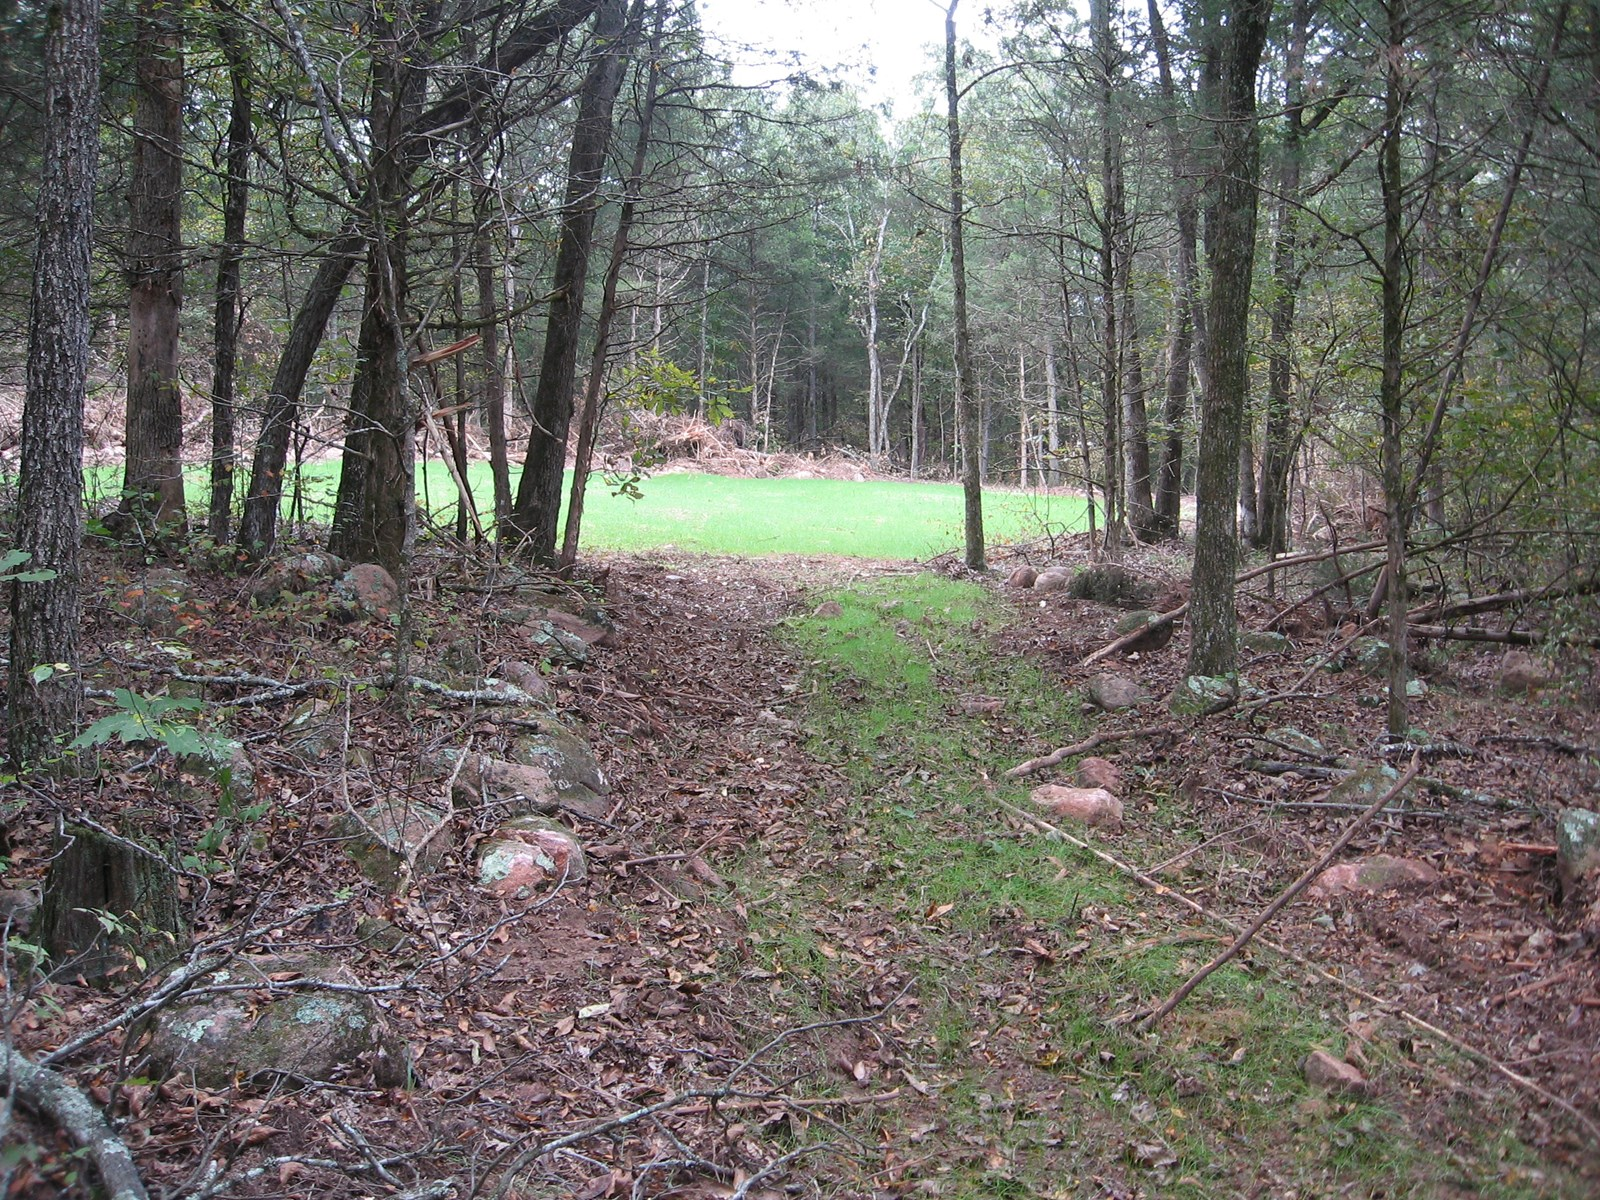 42.79 ACRES, ALL WOODED: